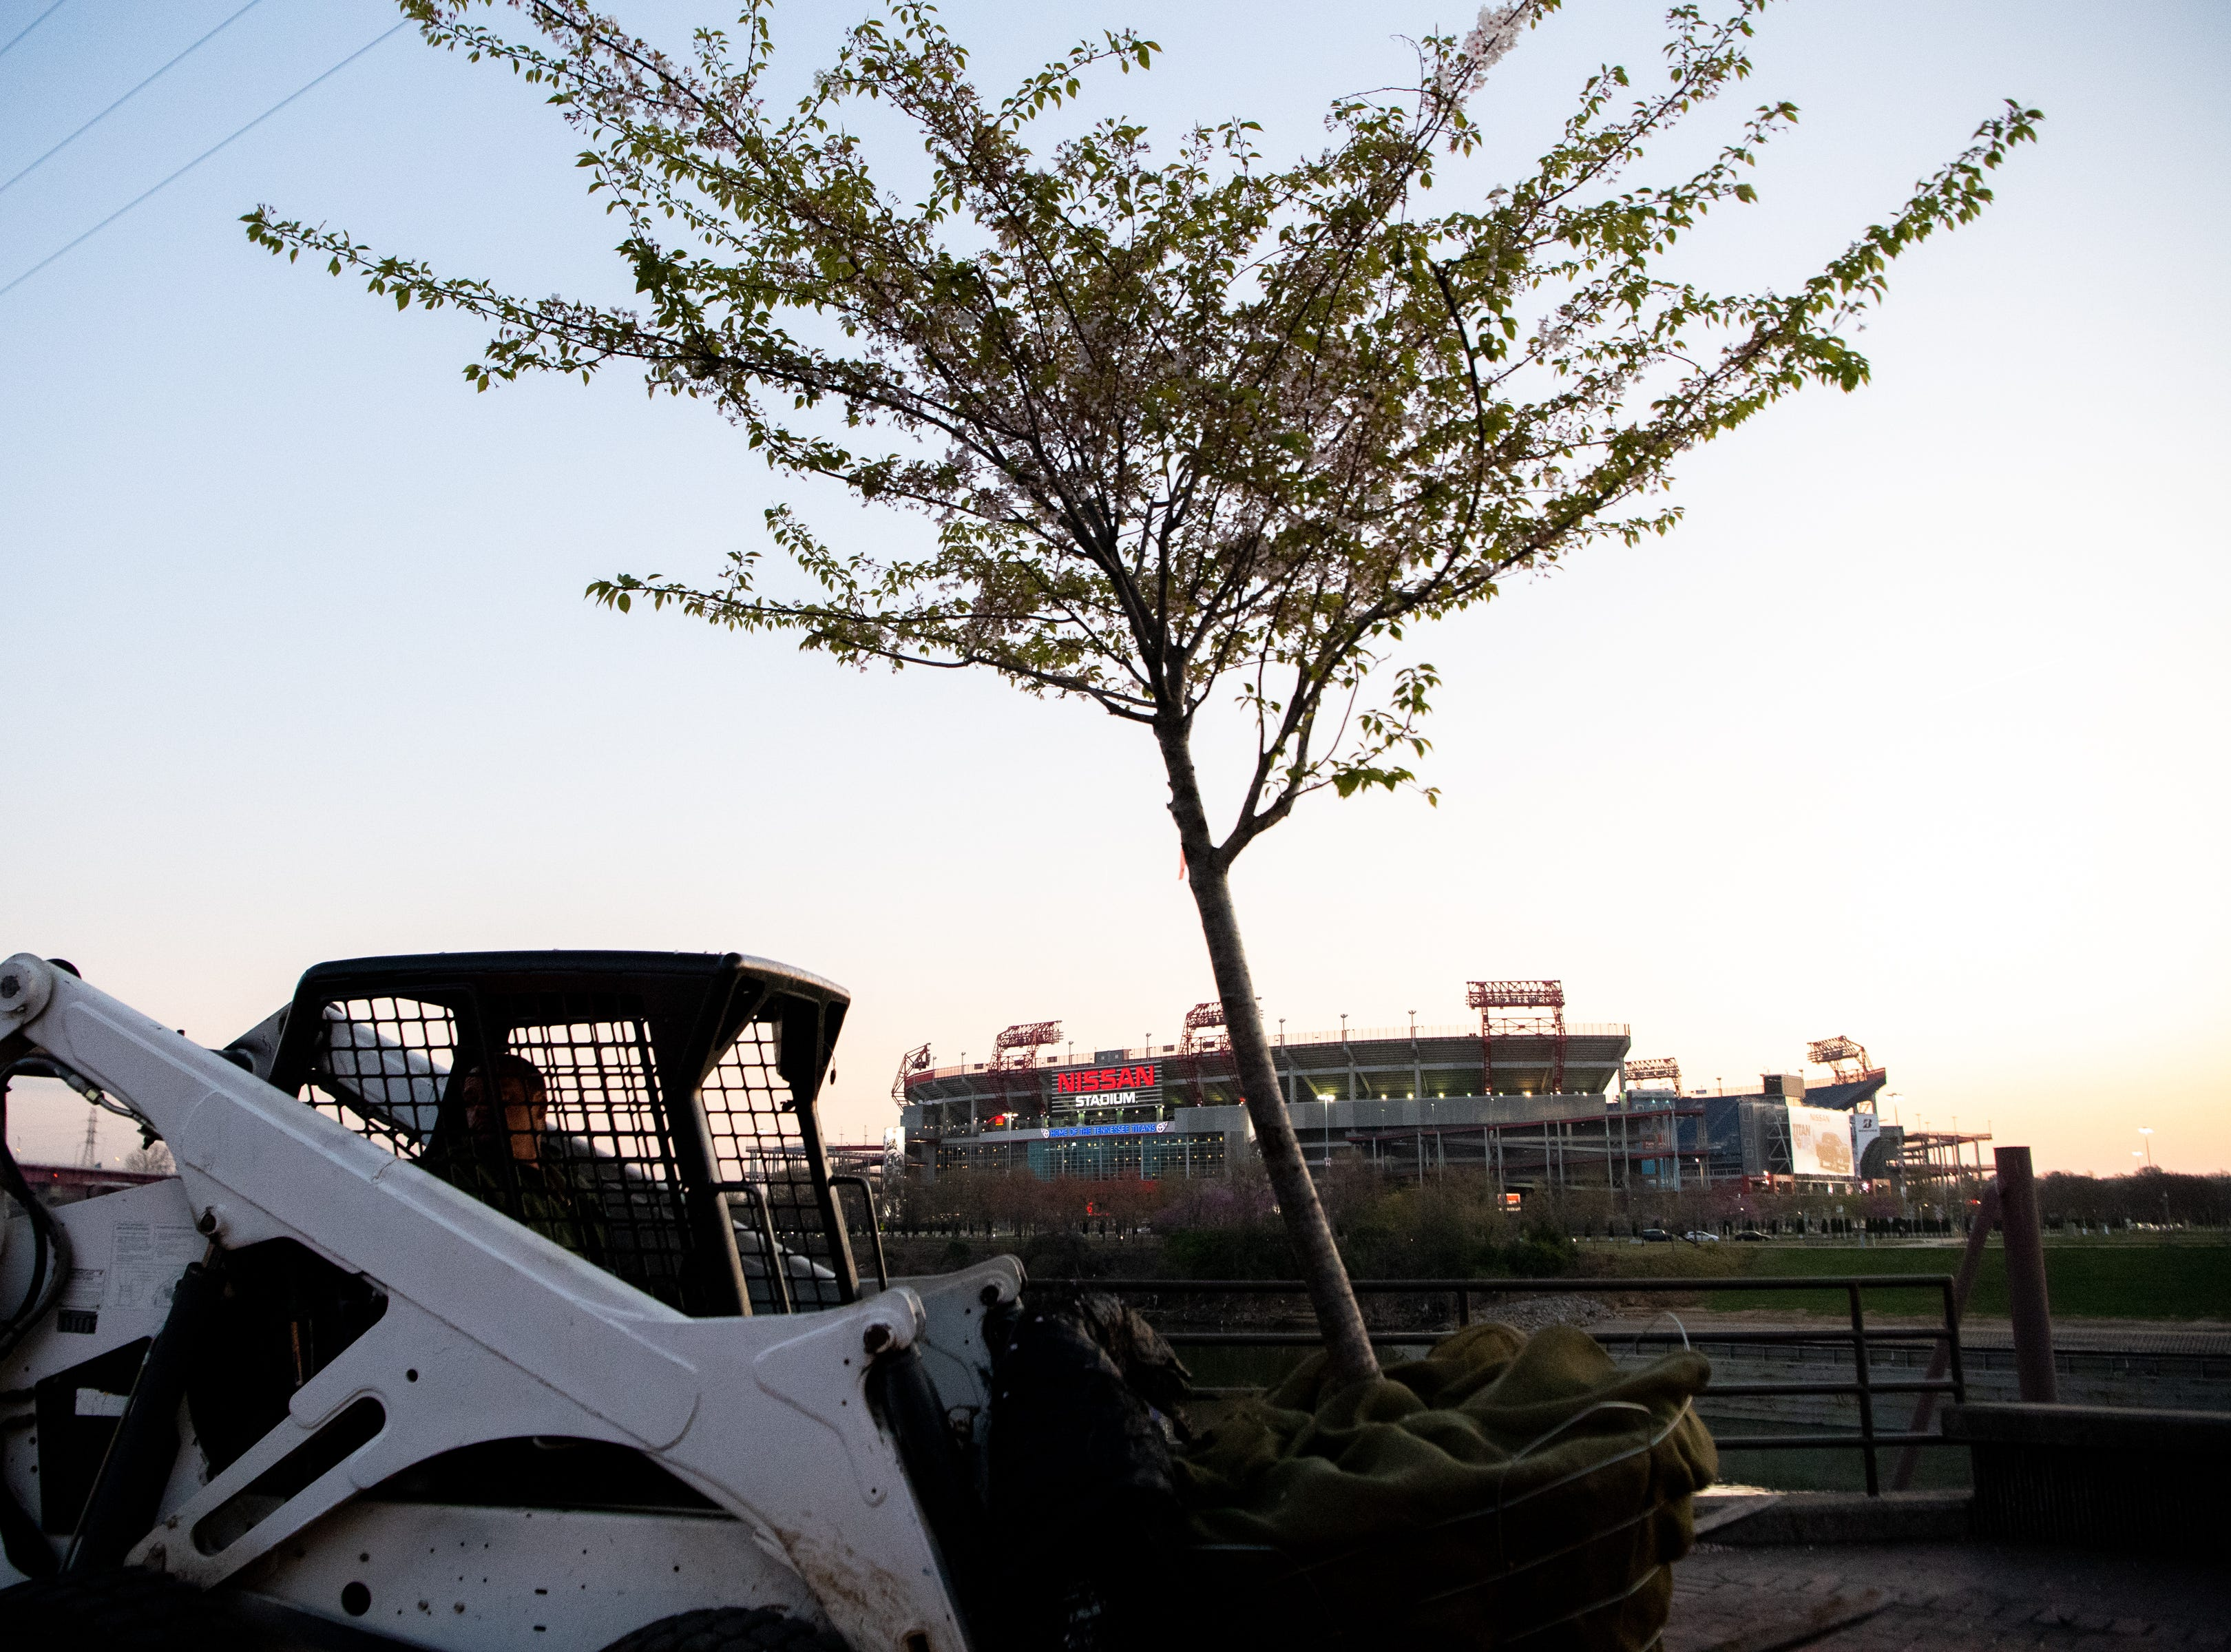 Metro Parks and Recreation workers move a Yoshino Cherry tree along the riverfront Wednesday, April 3, 2019, in Nashville, Tenn. The City is transplanting the trees after protest of chopping the trees down to make room for a giant stage for the upcoming NFL Draft.